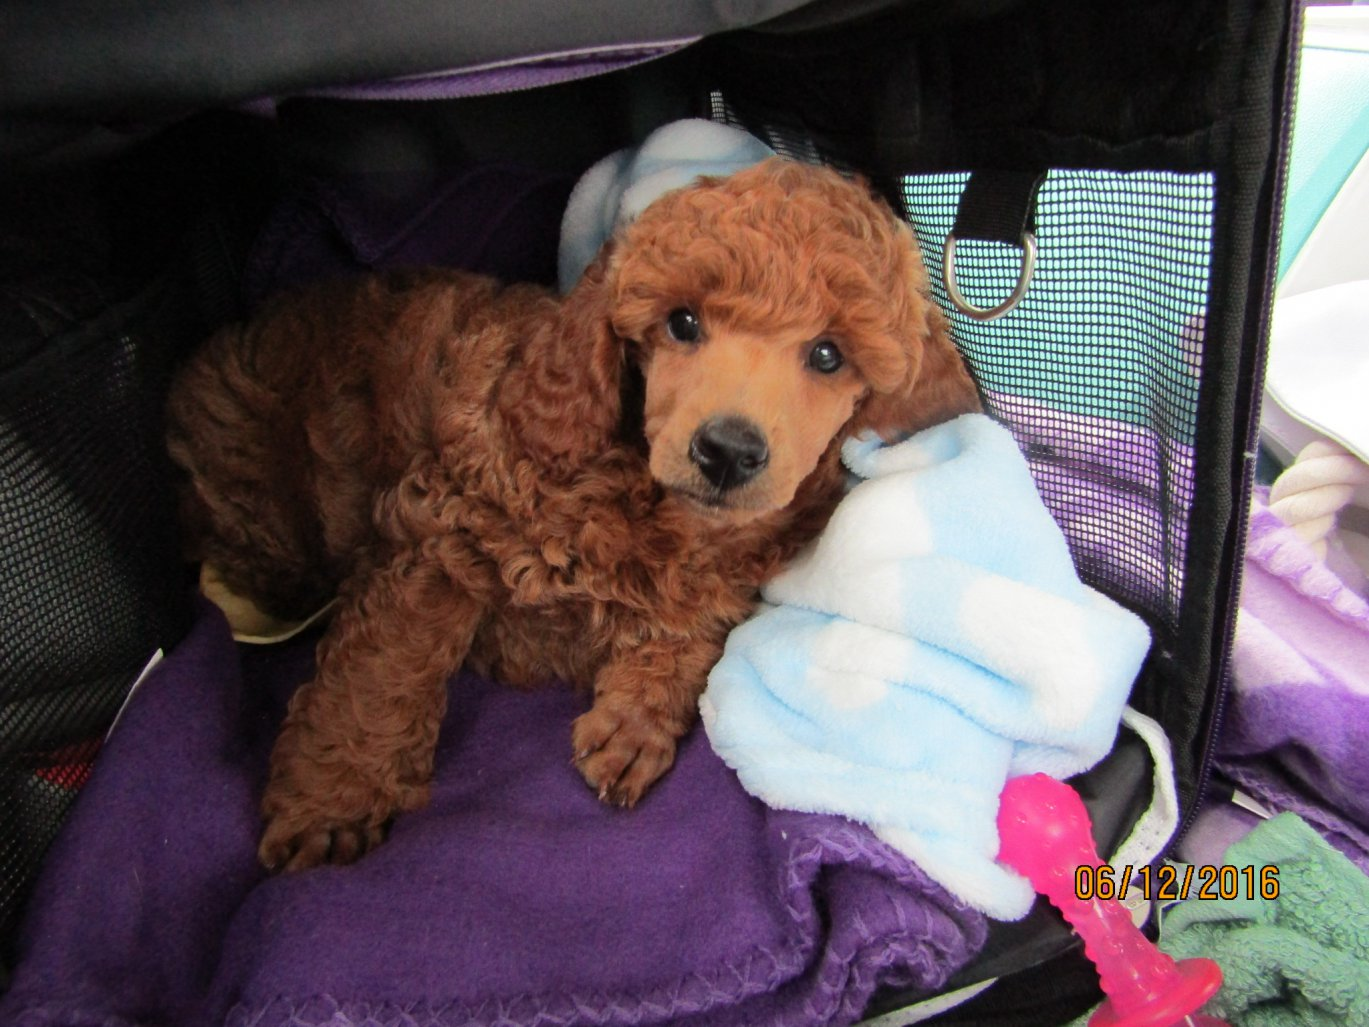 The First 52 Weeks of Lupin-ride-home-5hrs-8-wks-june-12-16.jpg